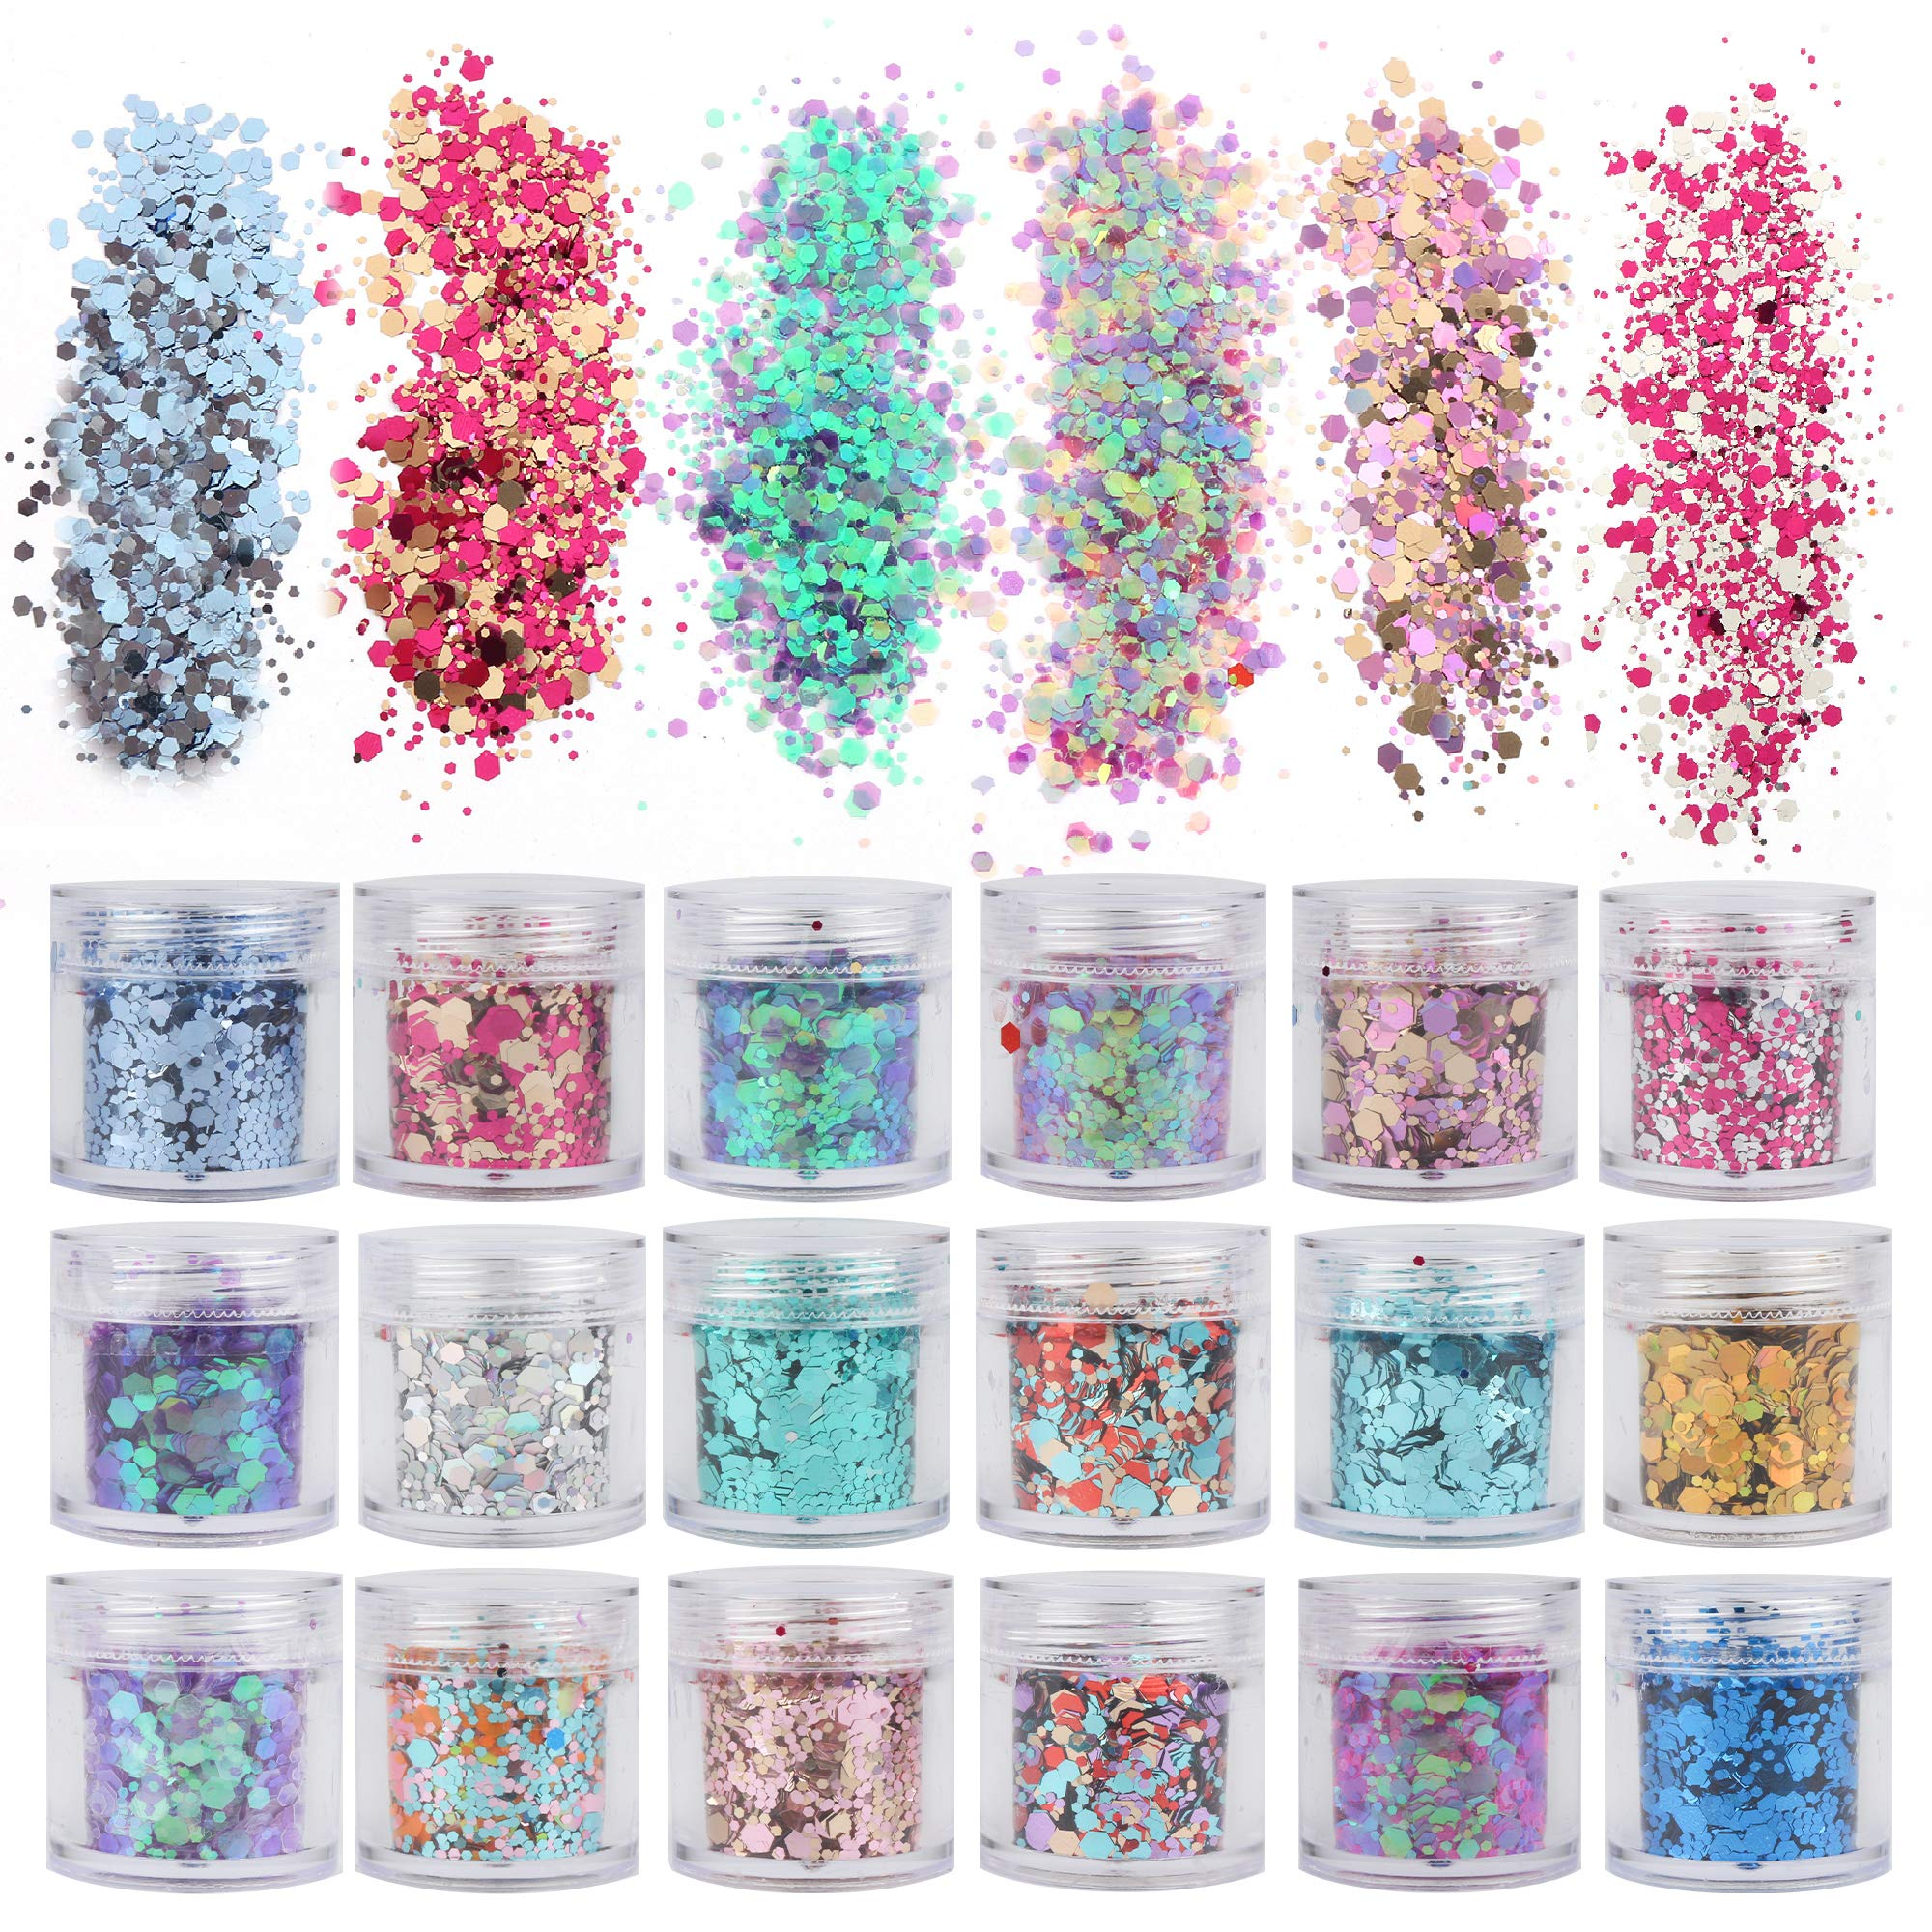 18 Boxes Holographic Cosmetic Festival Chunky Glitters Sequins, Nail Sequins Iridescent Flakes, Cosmetic Paillette Ultra-thin Tips, for Body Face Hair Make Up Nail Art Mixed Color Glitter by Kiikooll